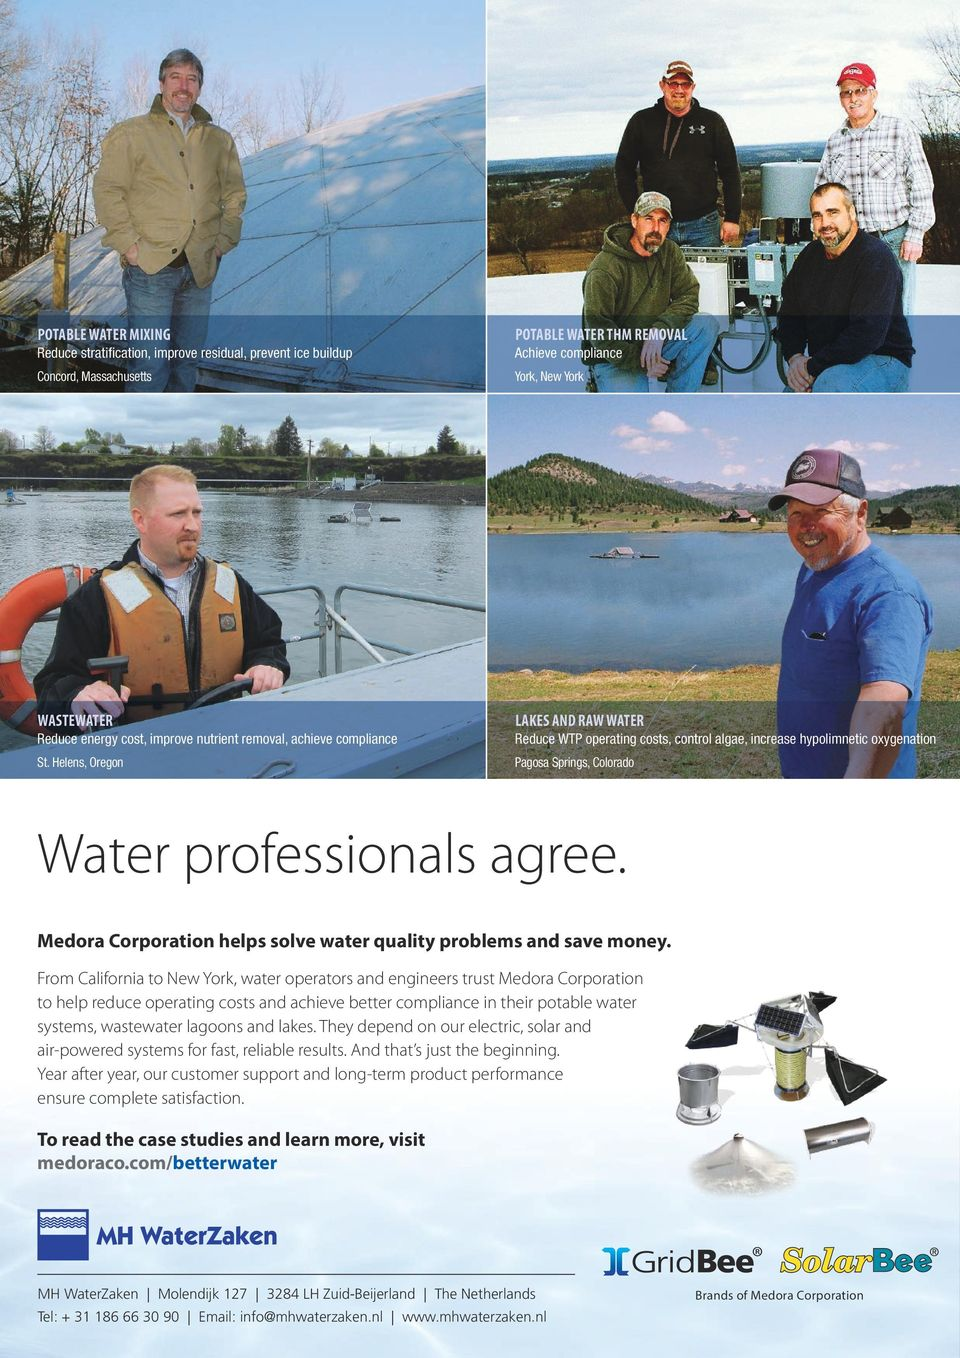 Helens, Oregon LAKES AND RAW WATER Reduce WTP operating costs, control algae, increase hypolimnetic oxygenation Pagosa Springs, Colorado Water professionals agree.